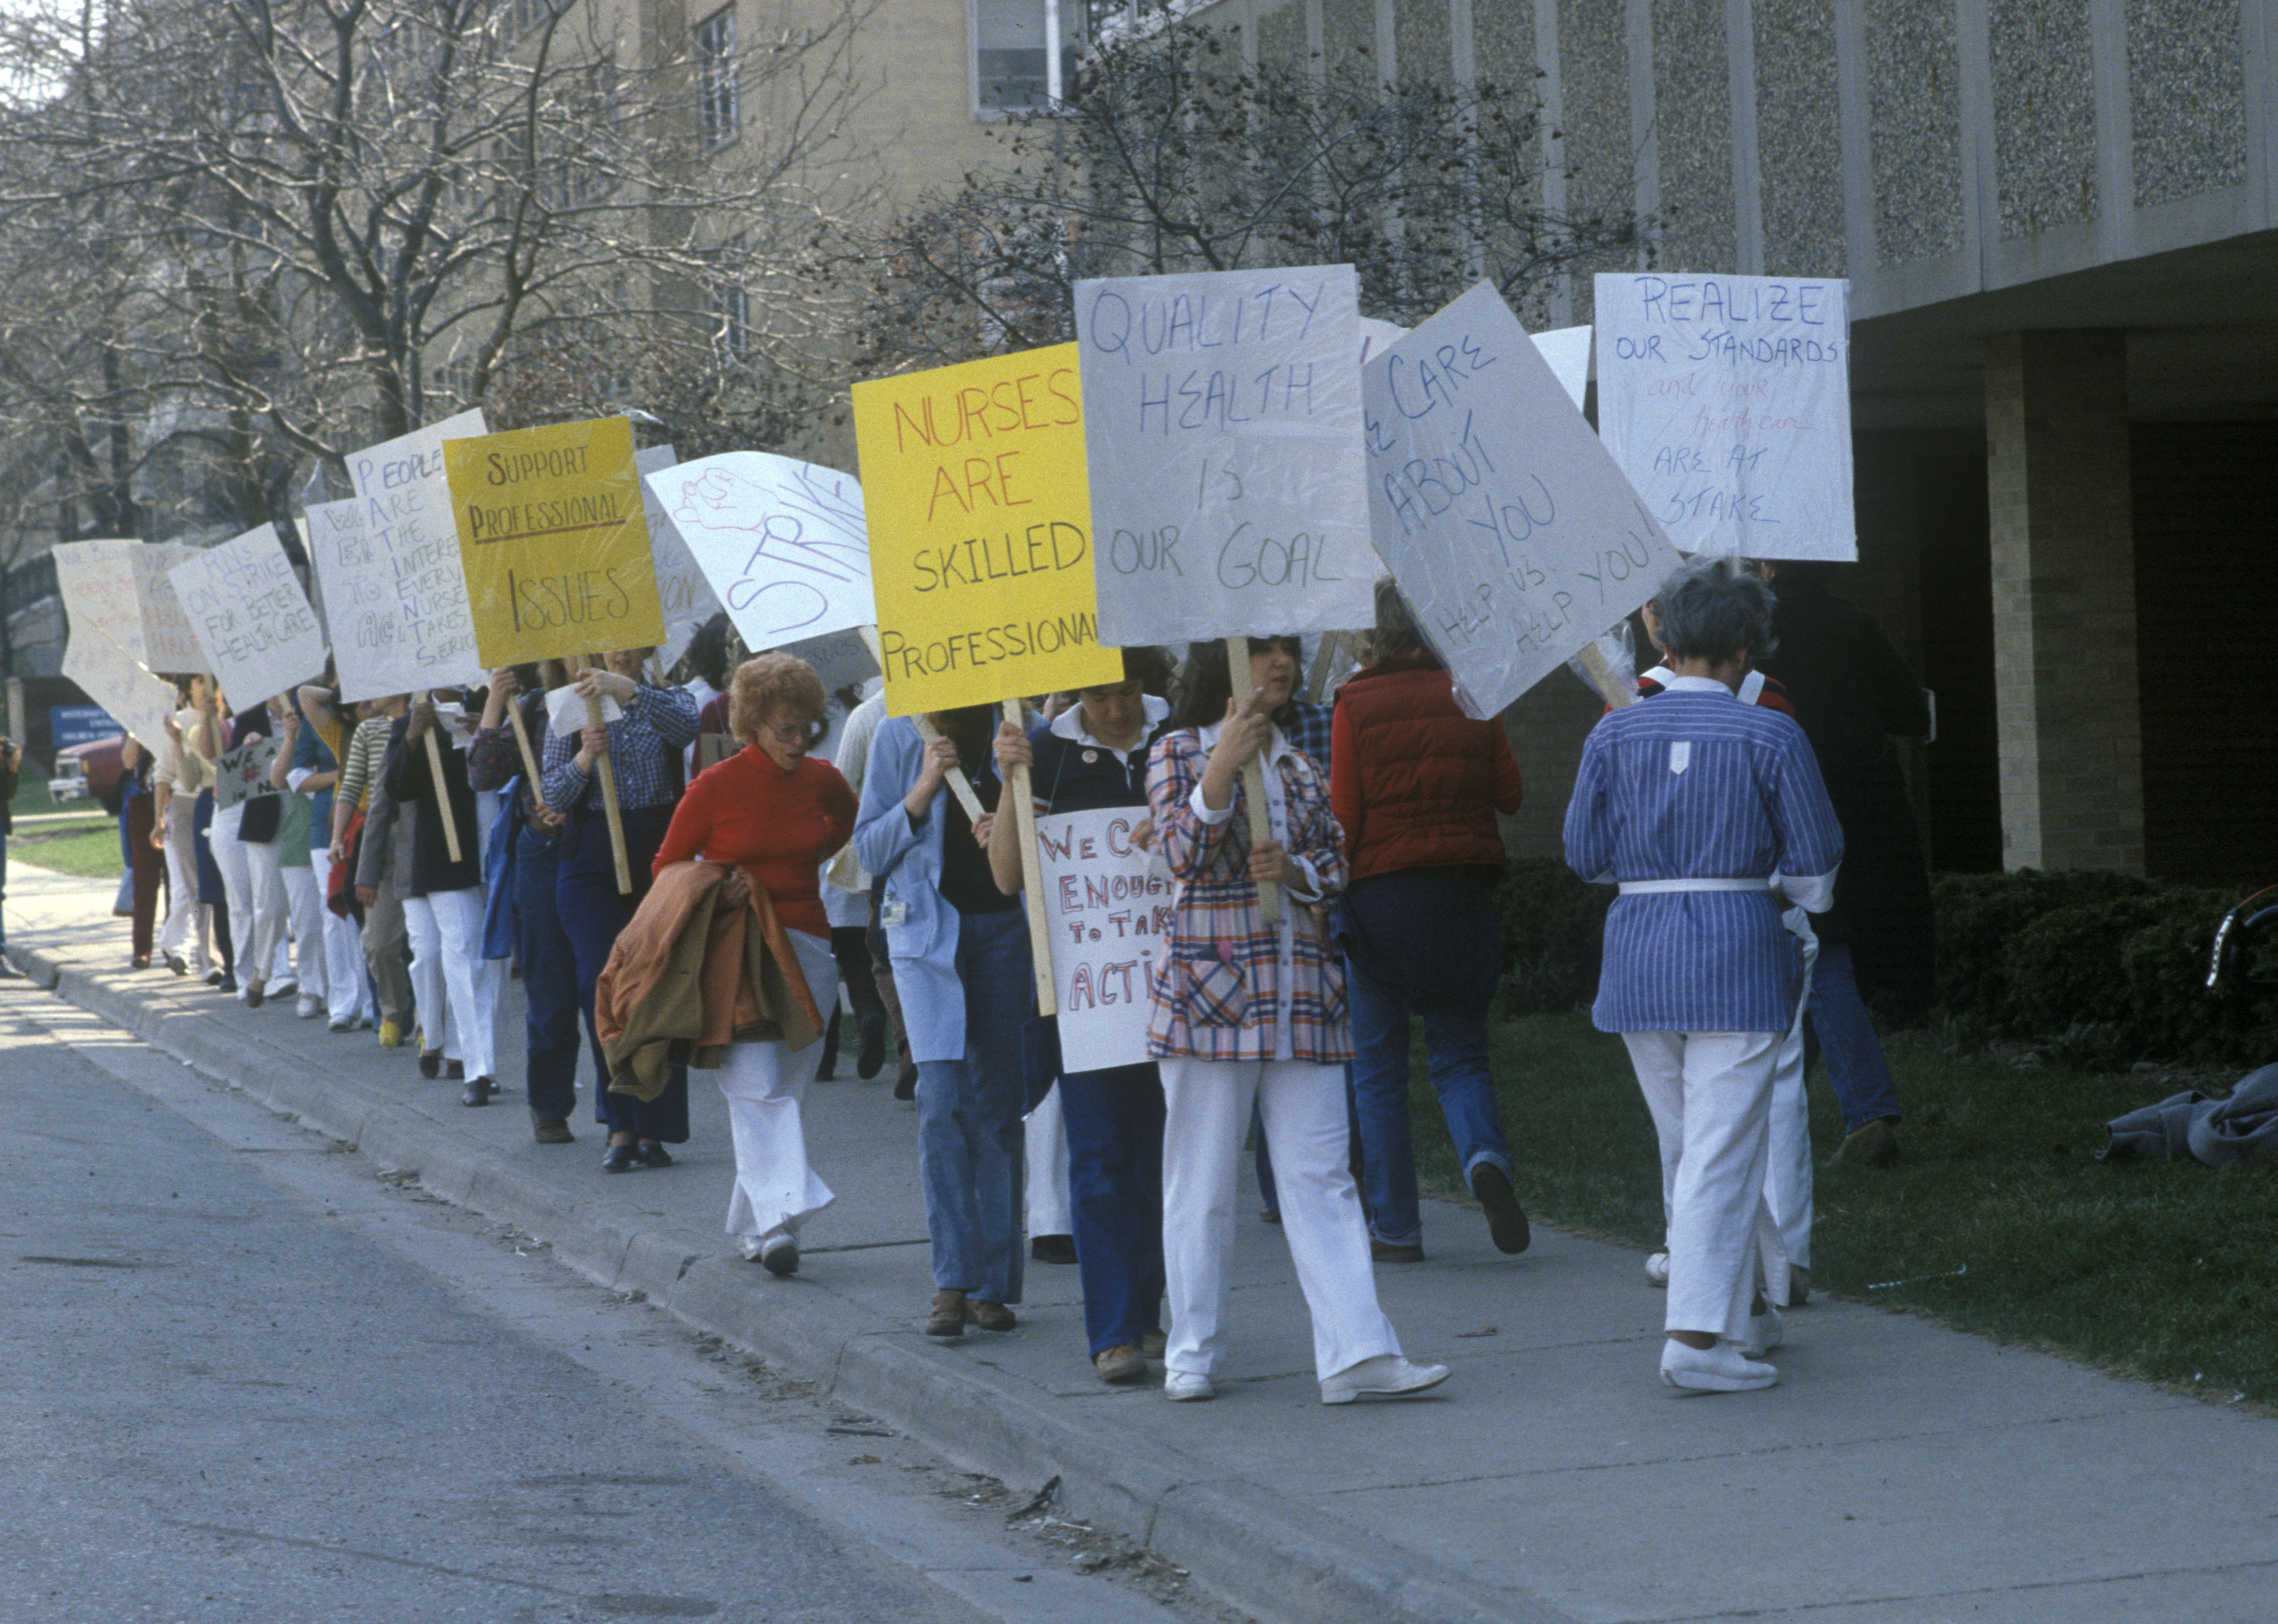 Nurses Striking at the University of Michigan for the First Time in Hospital's History, April 1981 image